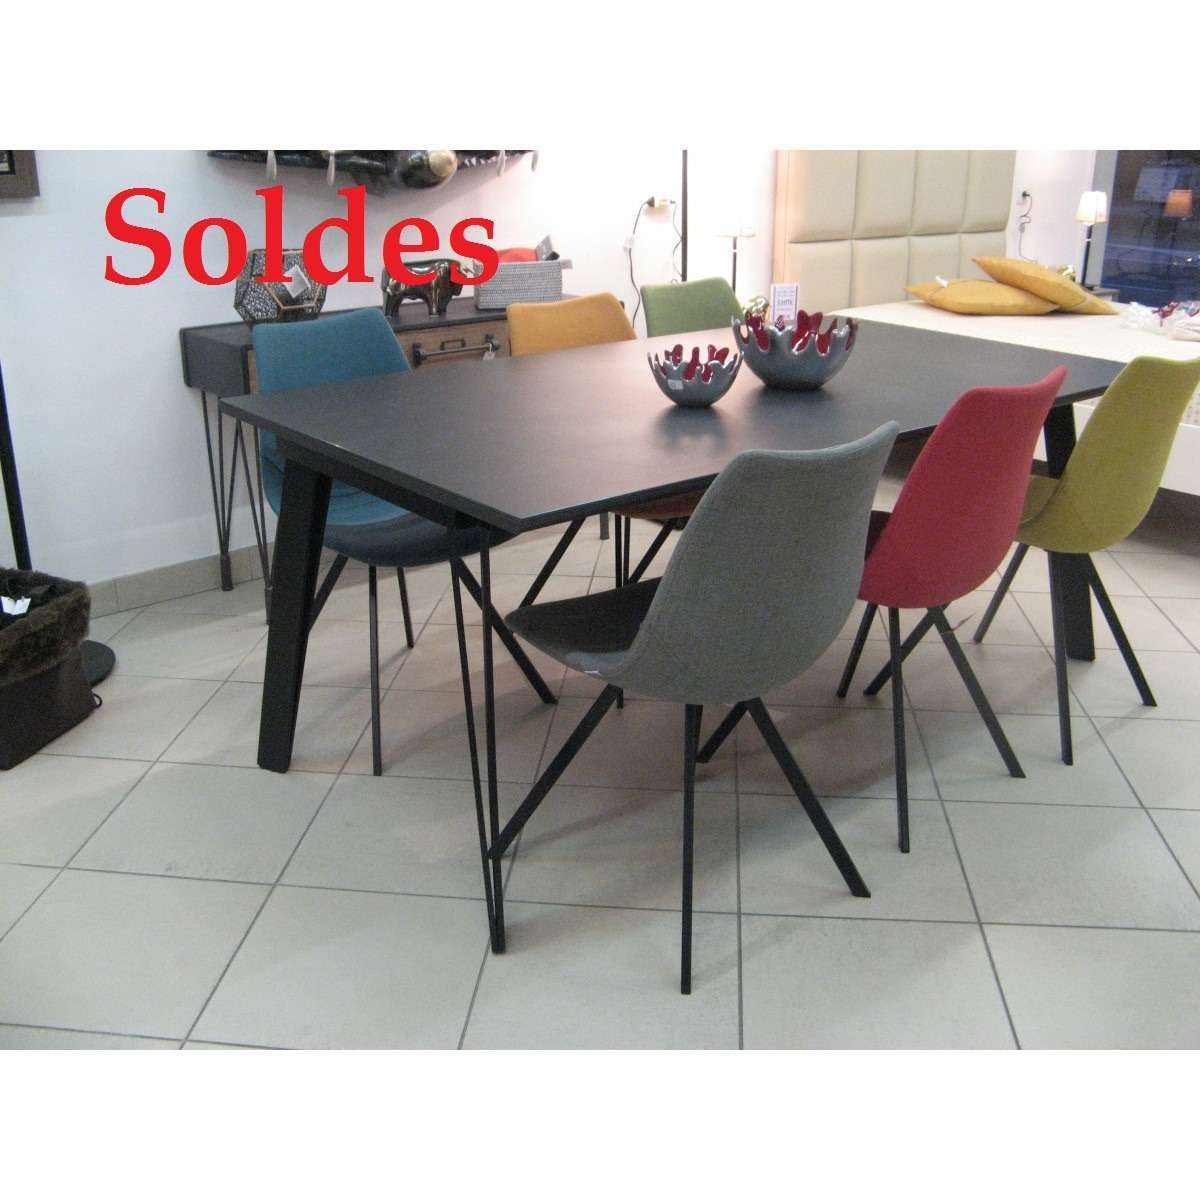 solde table c ramique 180x100. Black Bedroom Furniture Sets. Home Design Ideas